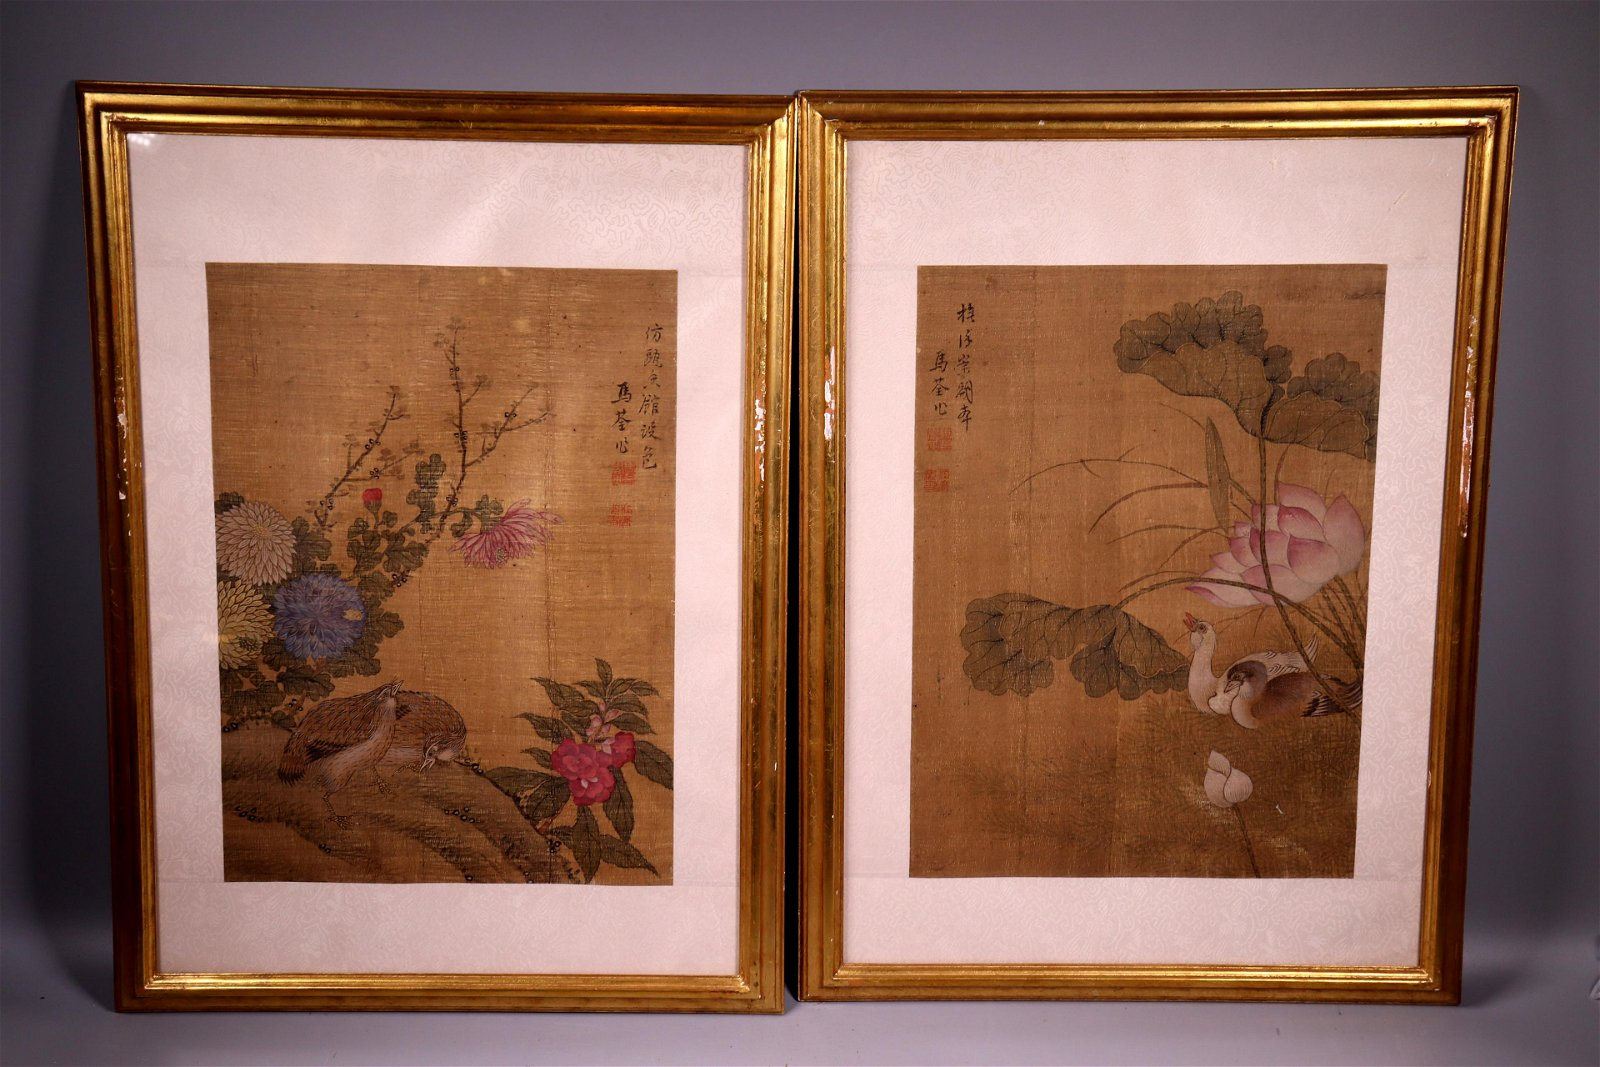 2 - Ma Quan Chinese Paintings on Silk